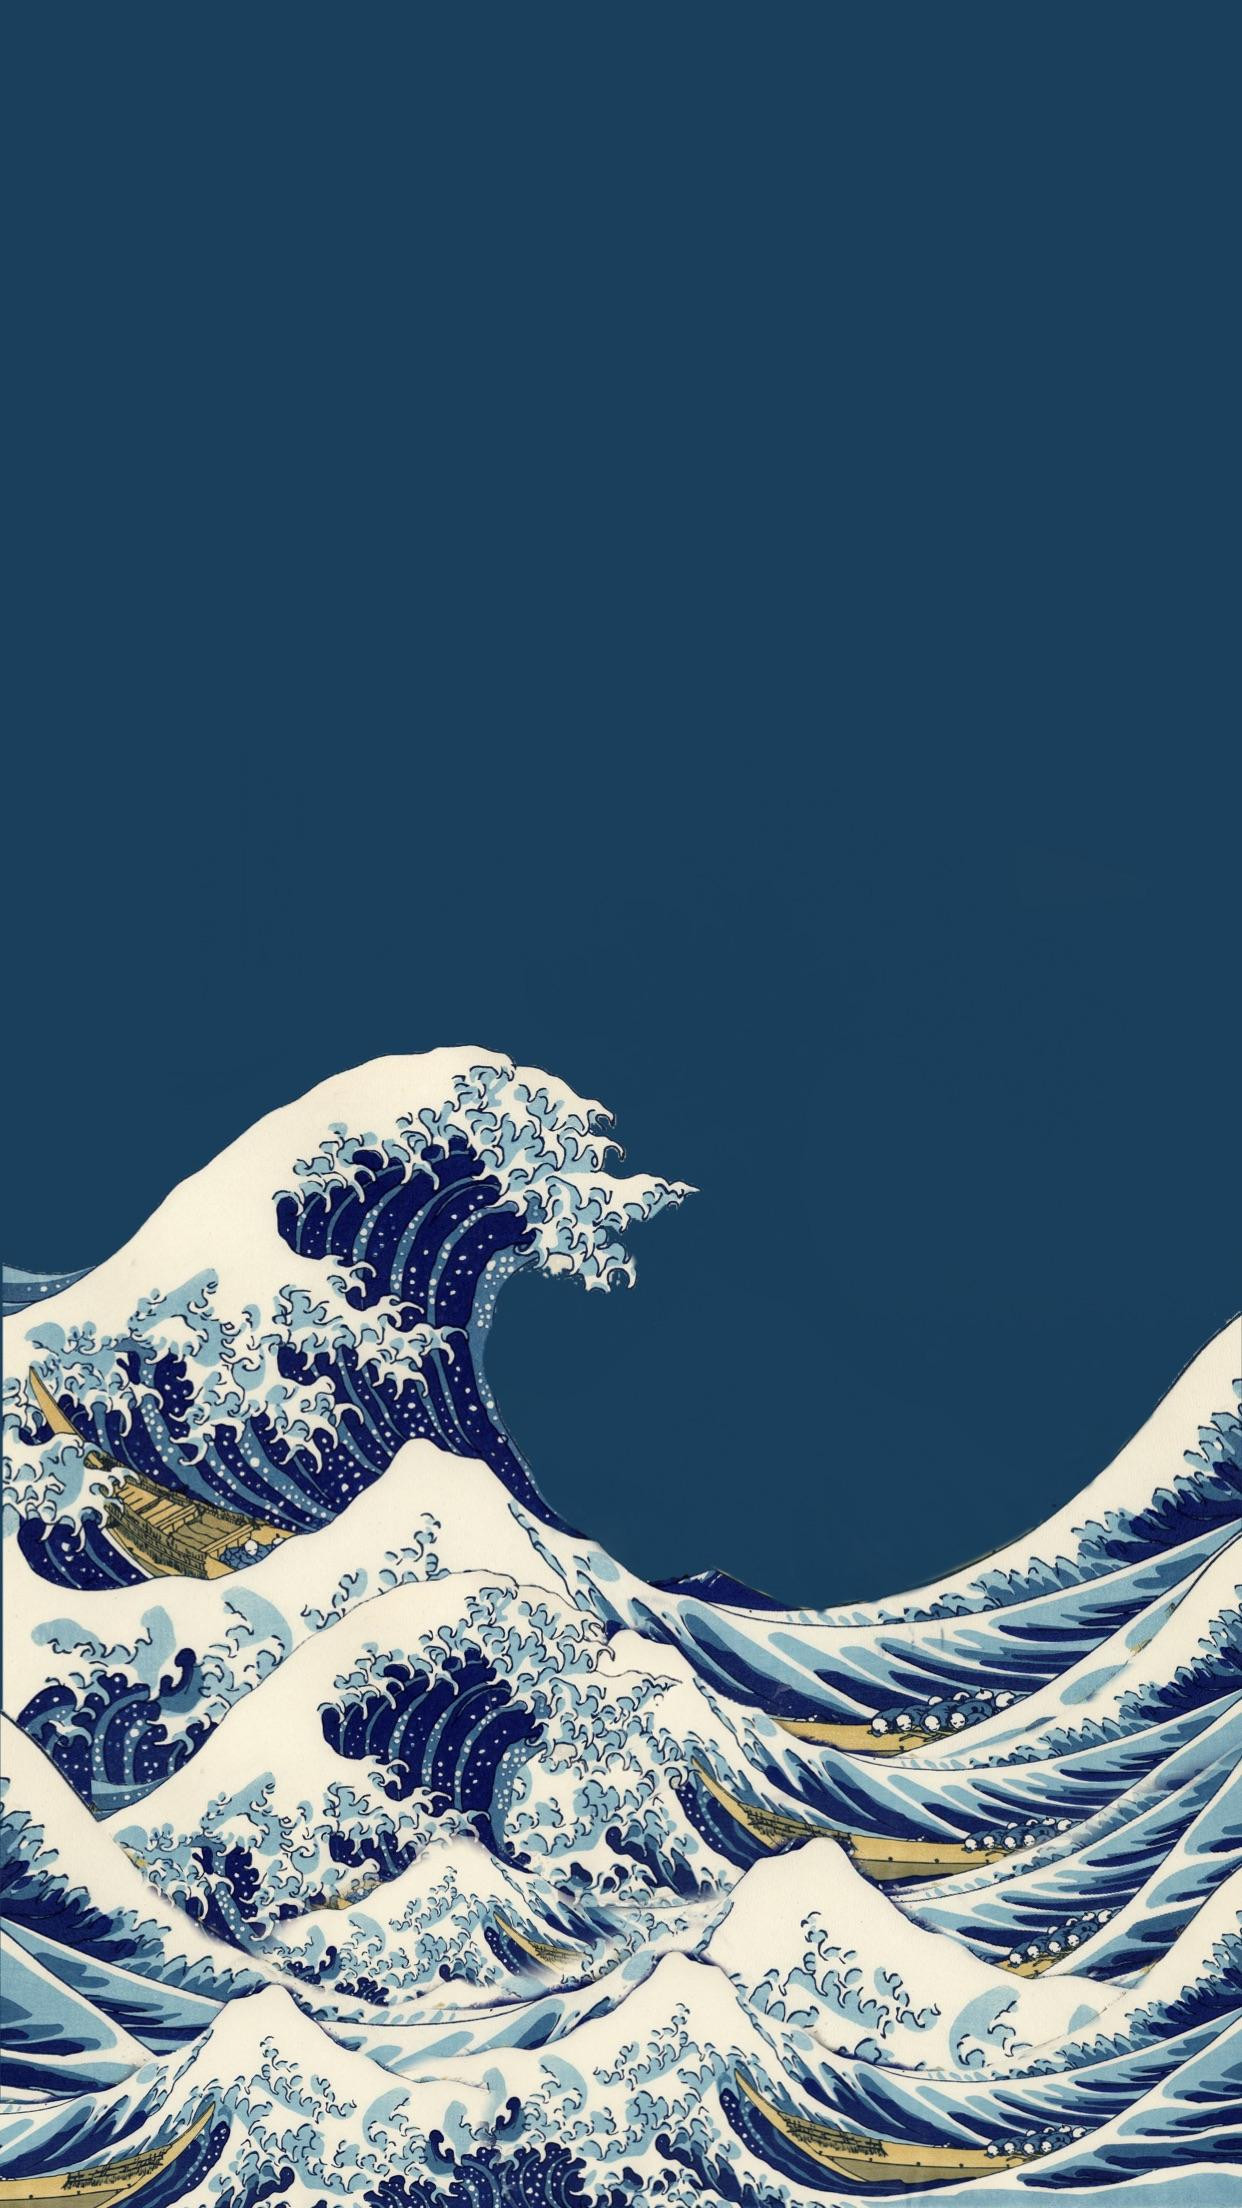 ihxbRRx a wallpaper i made iphone the great wave